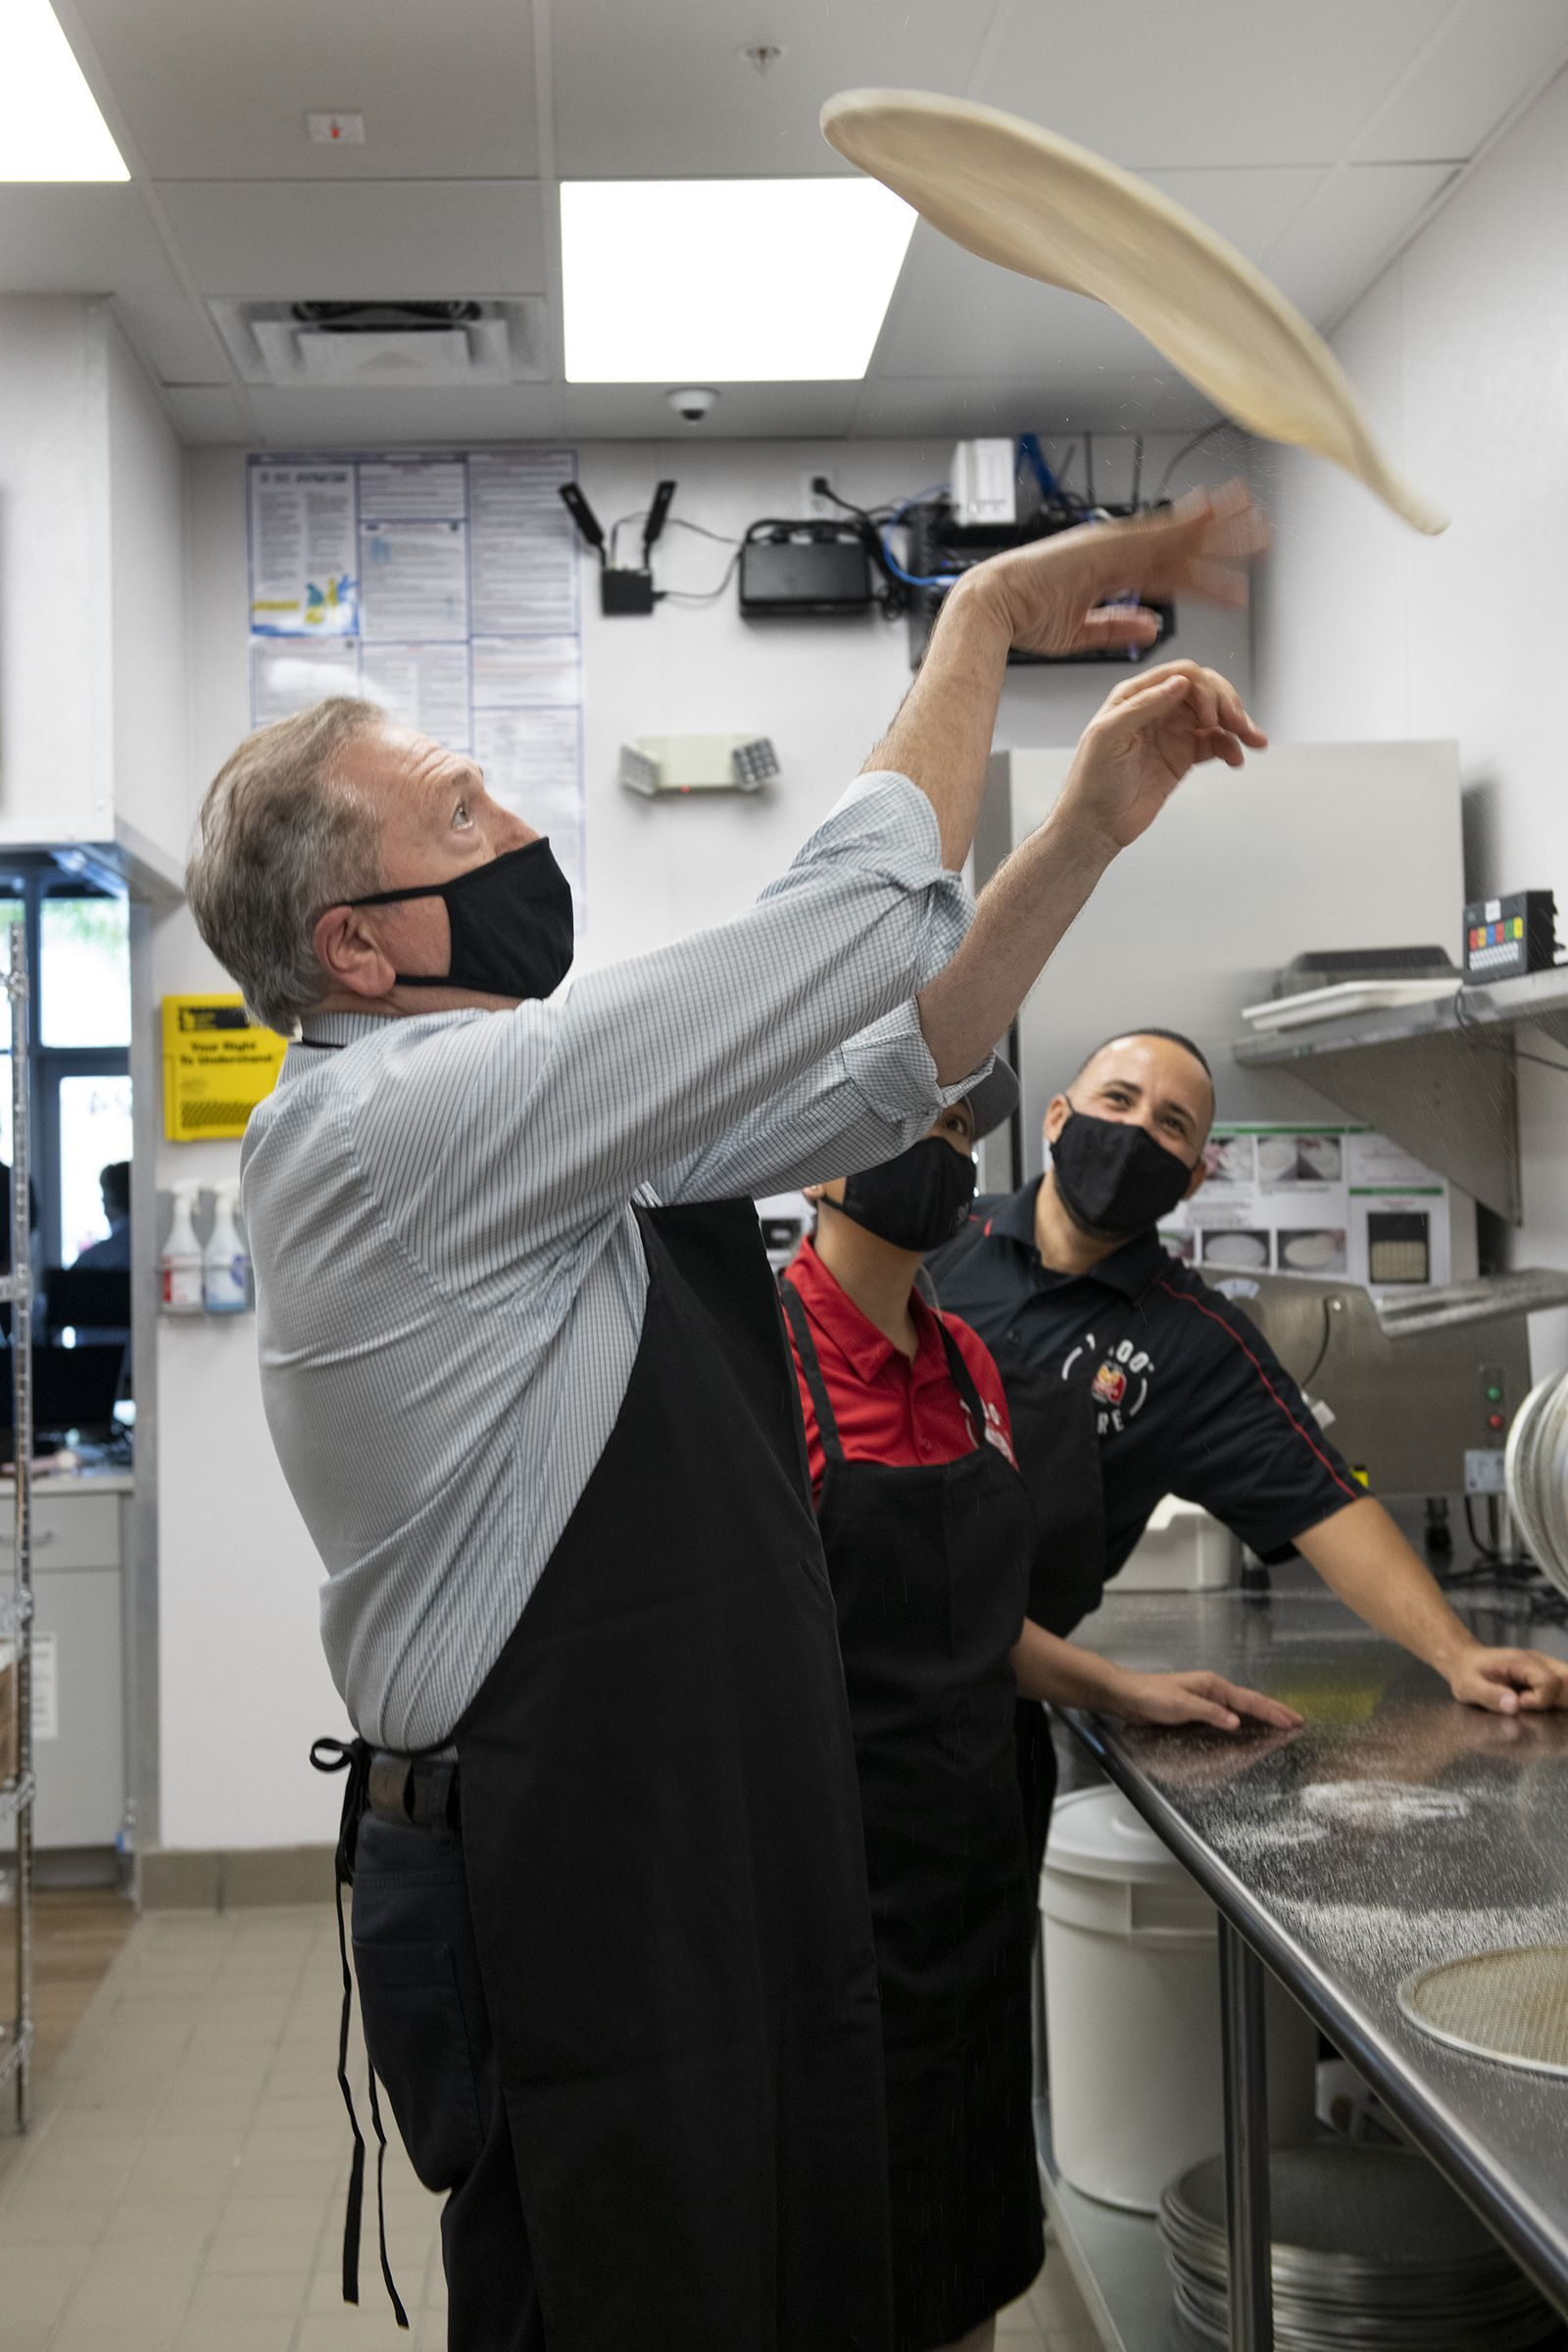 Marco's Pizza founder Pasquale Giammarco, foreground, demonstrates his pizza-tossing skills to franchisees Kattya Barbaran and Rafi Vargas Tuesday, October 20, 2020 in Kissimmee, Fla. The store is the 1000th franchise store opened by the pizza brand. Both Varga and Barbaran are residents of Kissimmee.